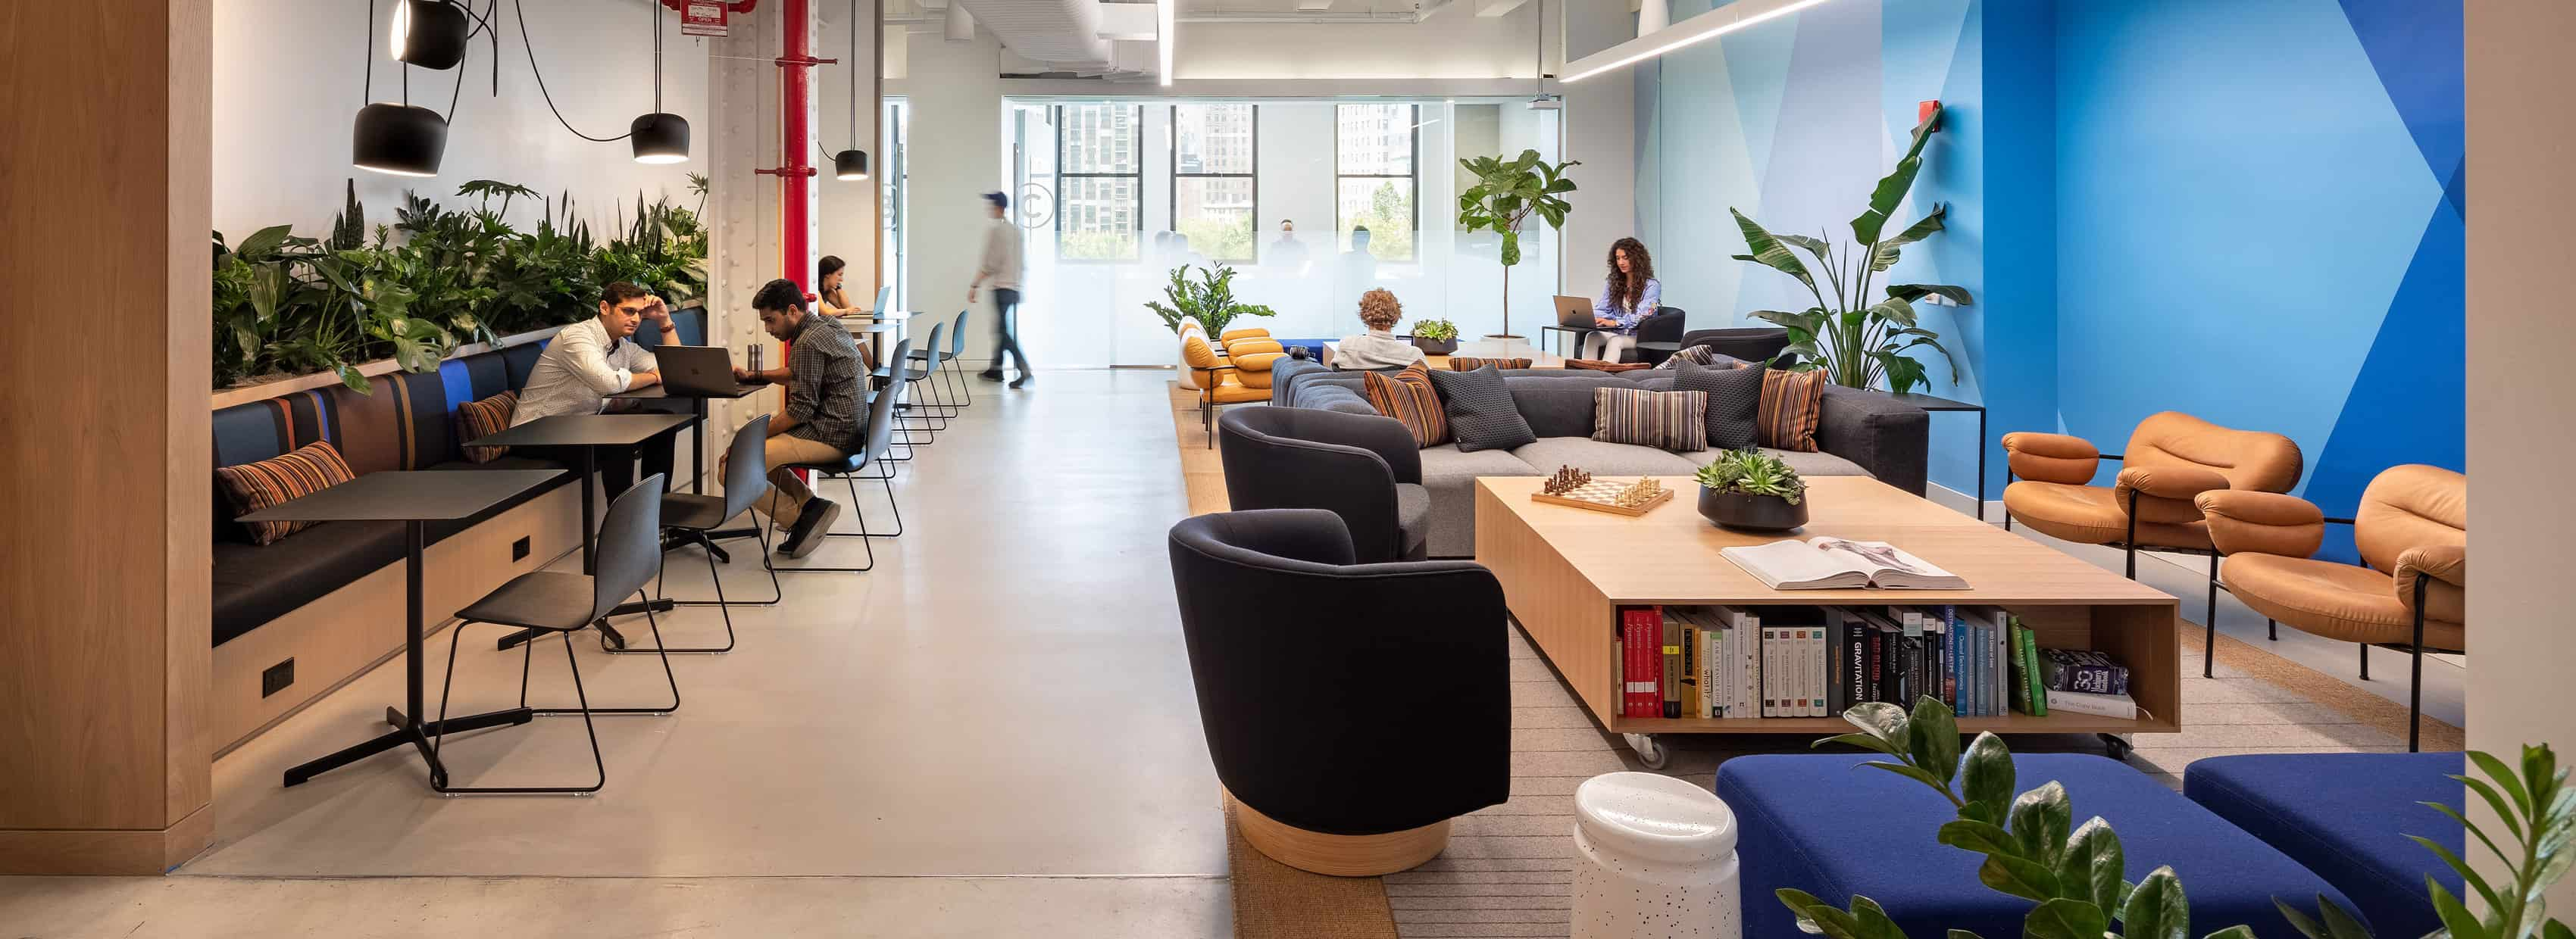 The sitting area of Butterfly Network HQ in NYC